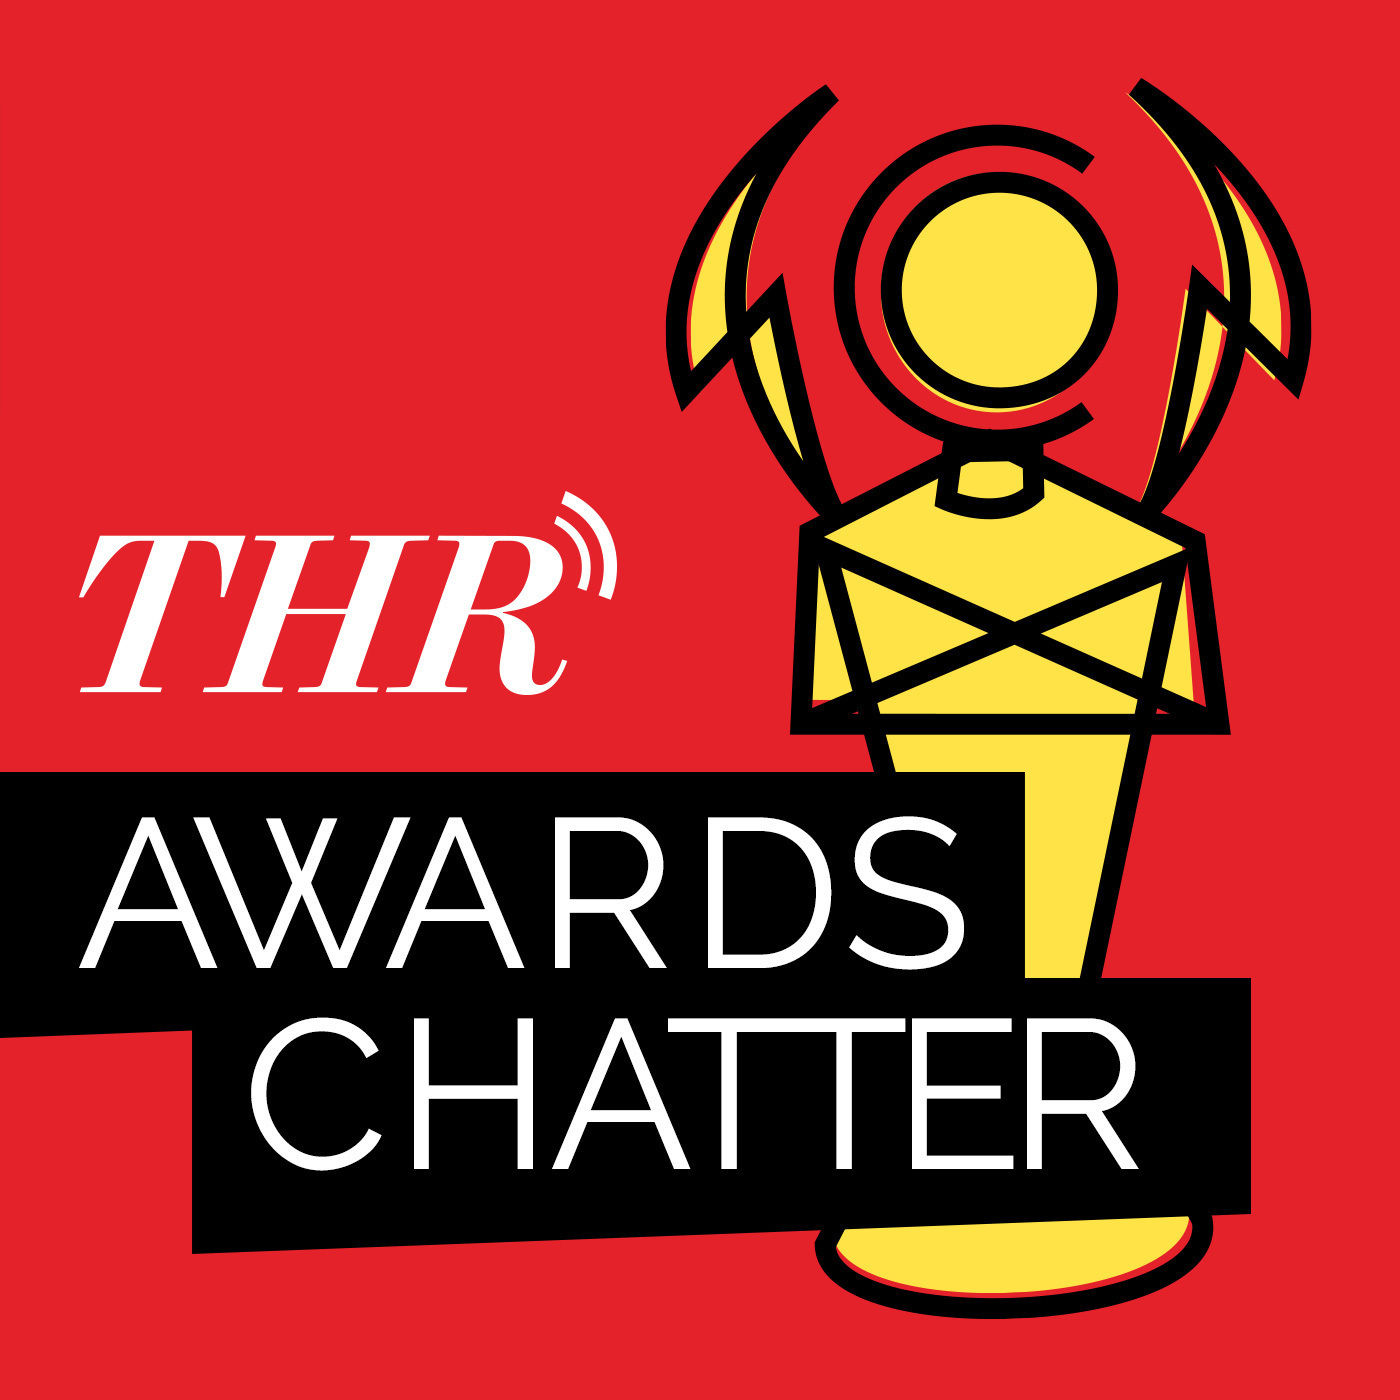 The Hollywood Reporter Awards Chatter - Scott Feinburg is a really great celebrity interviewer. Even when listening to someone I feel like I know a lot about, I learn more about their history and their experience playing these great roles. He mainly interviews those who are promoting their shows that are getting a lot of buzz during award season. The Oprah episode is a personal favorite.Favorite Episodes: Oprah Winfrey, Reese Witherspoon, Julia Louis- Dreyfus, Andy Cohen, Jerry Seinfeld, Aziz Ansari, Amy Schumer